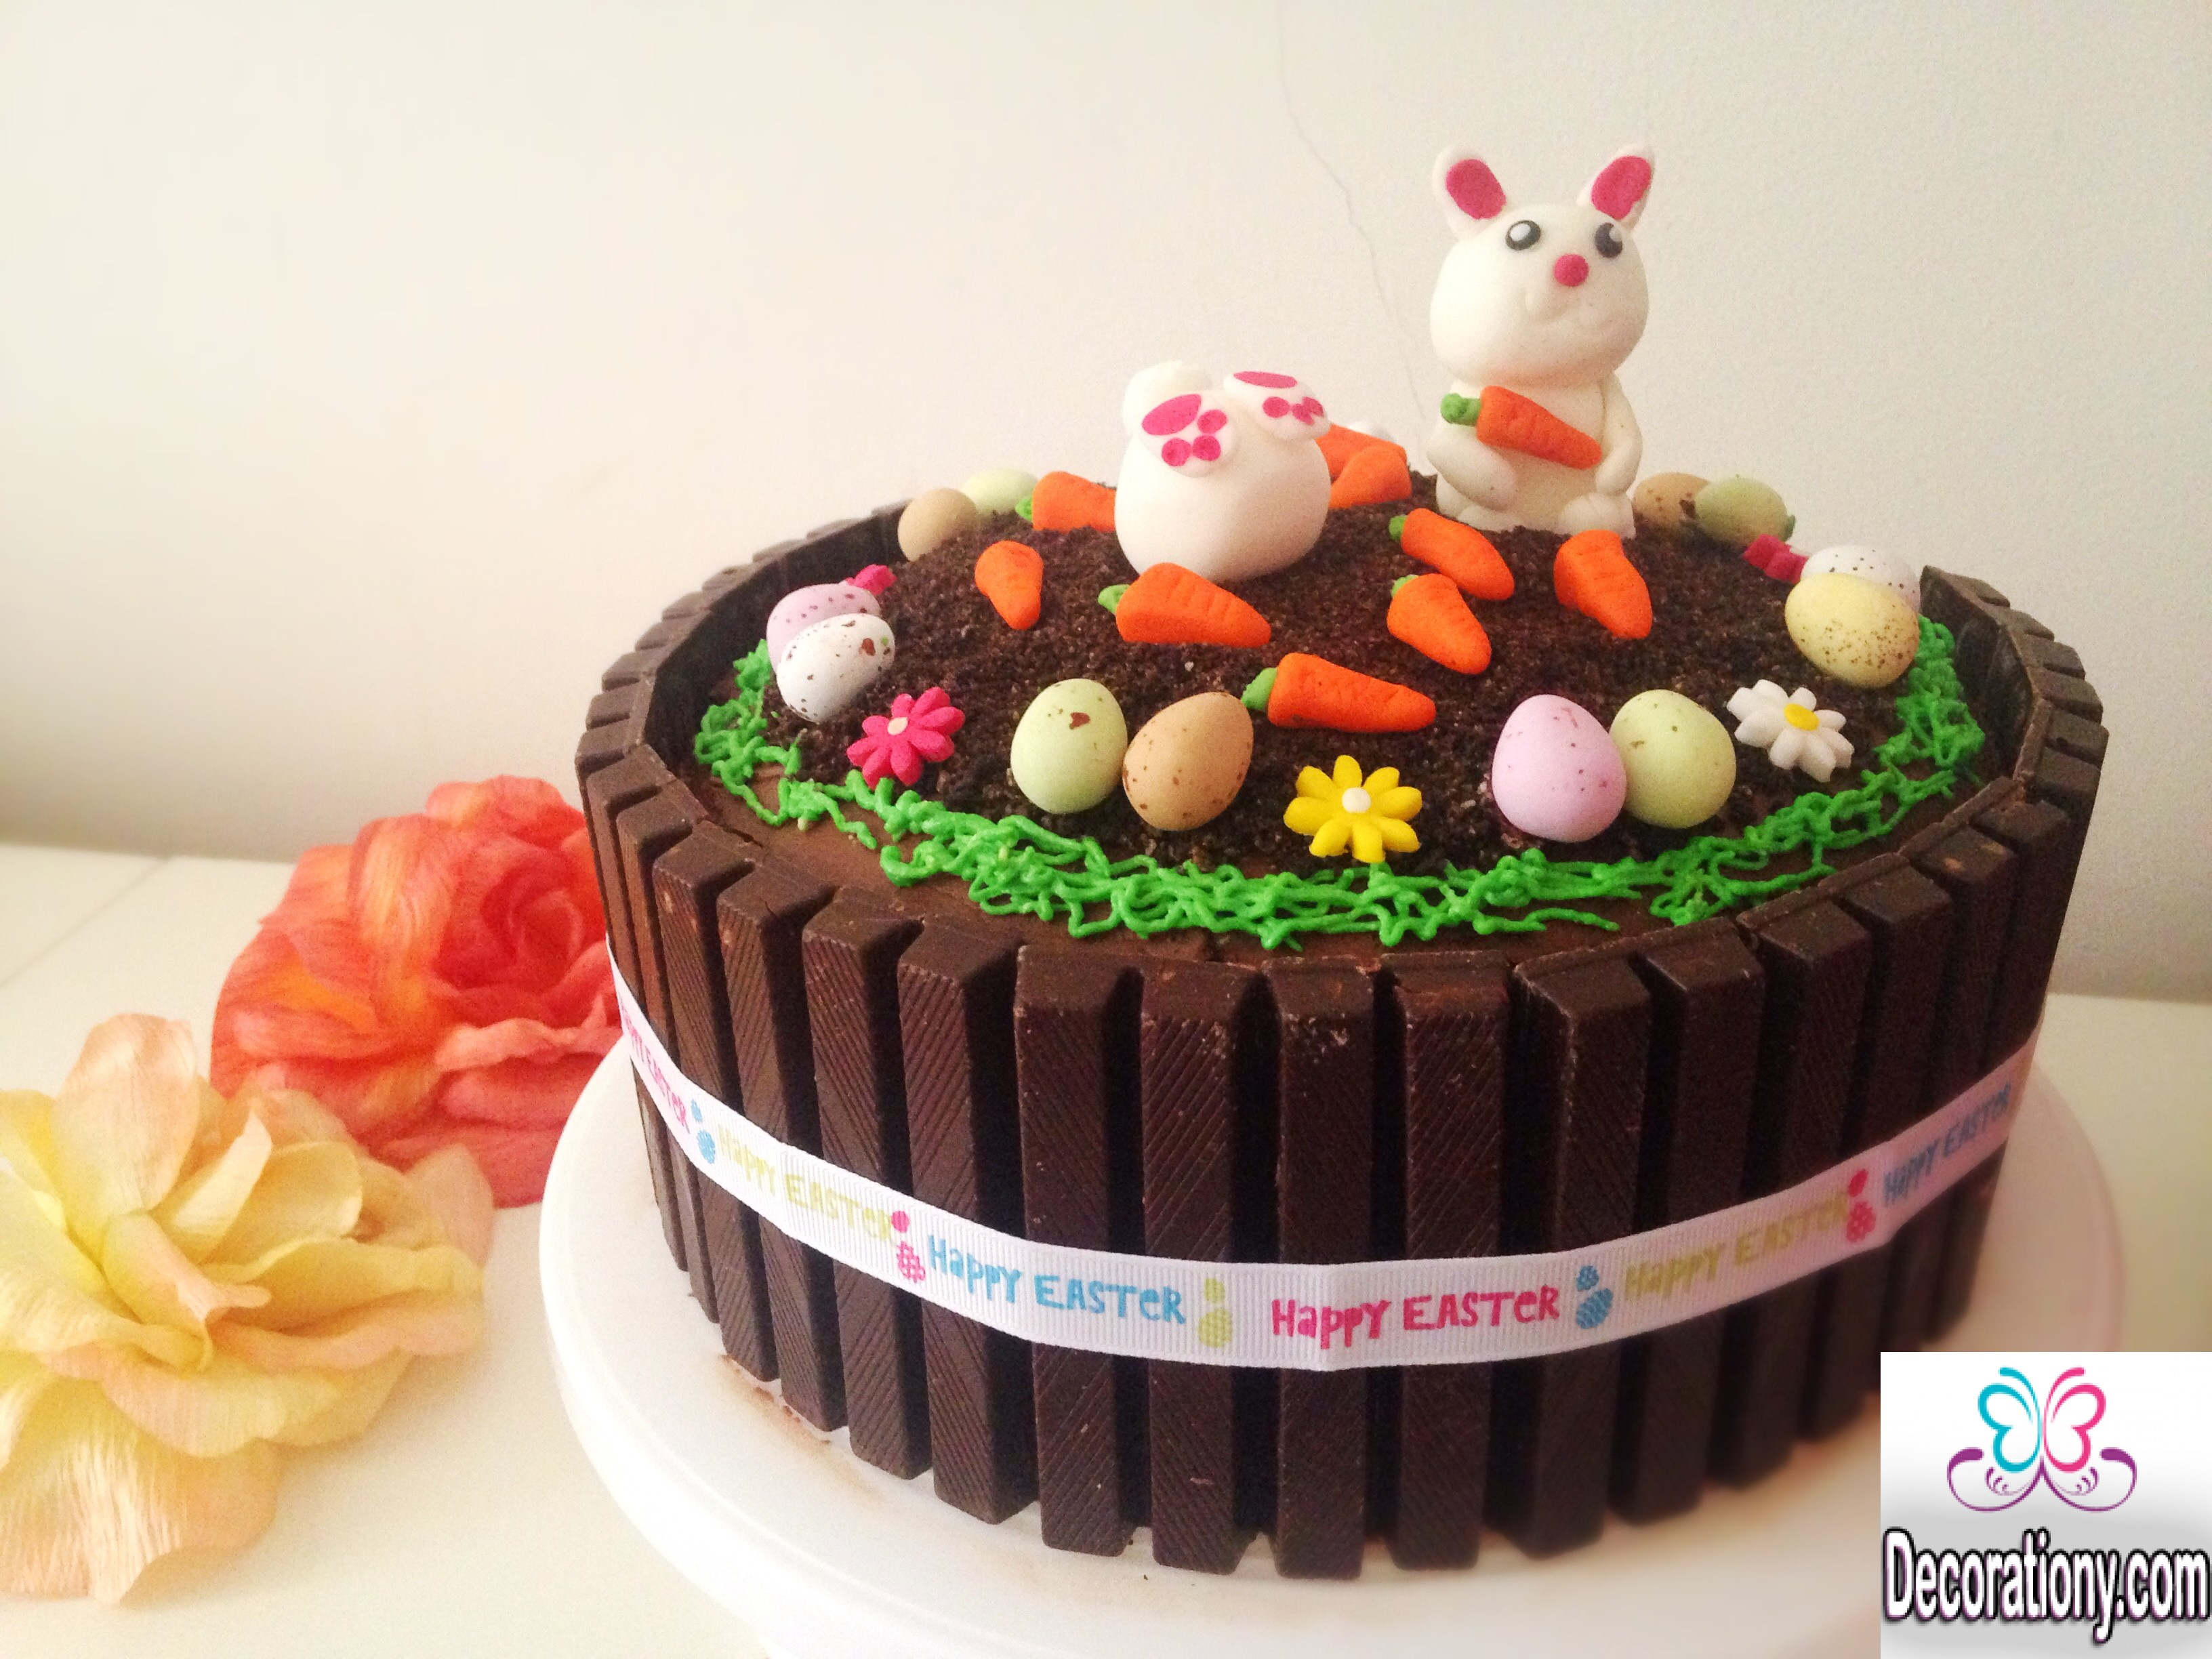 Cute Easter Bunny Cake Decorating Ideas - Decoration Y